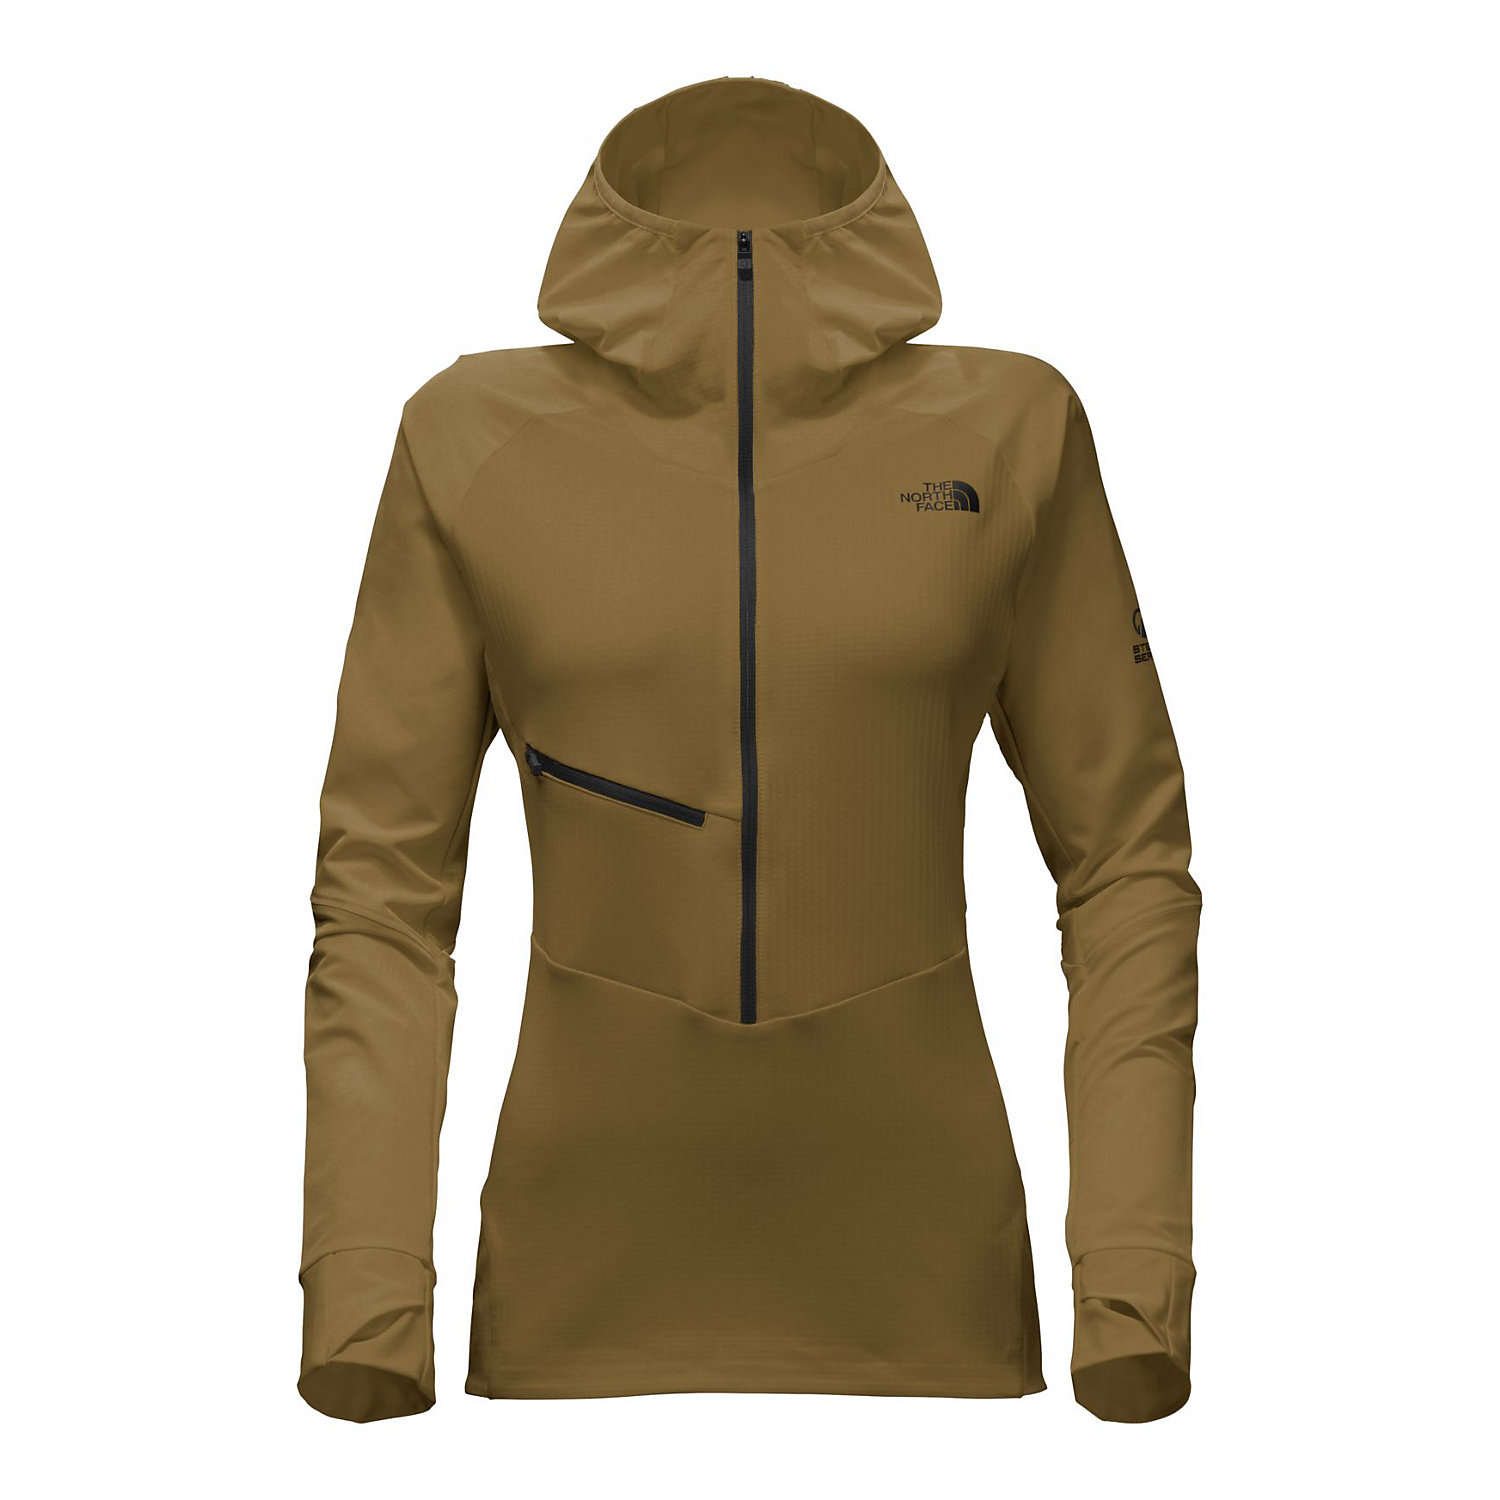 0a4263c09 The North Face Steep Series Women's Respirator Jacket